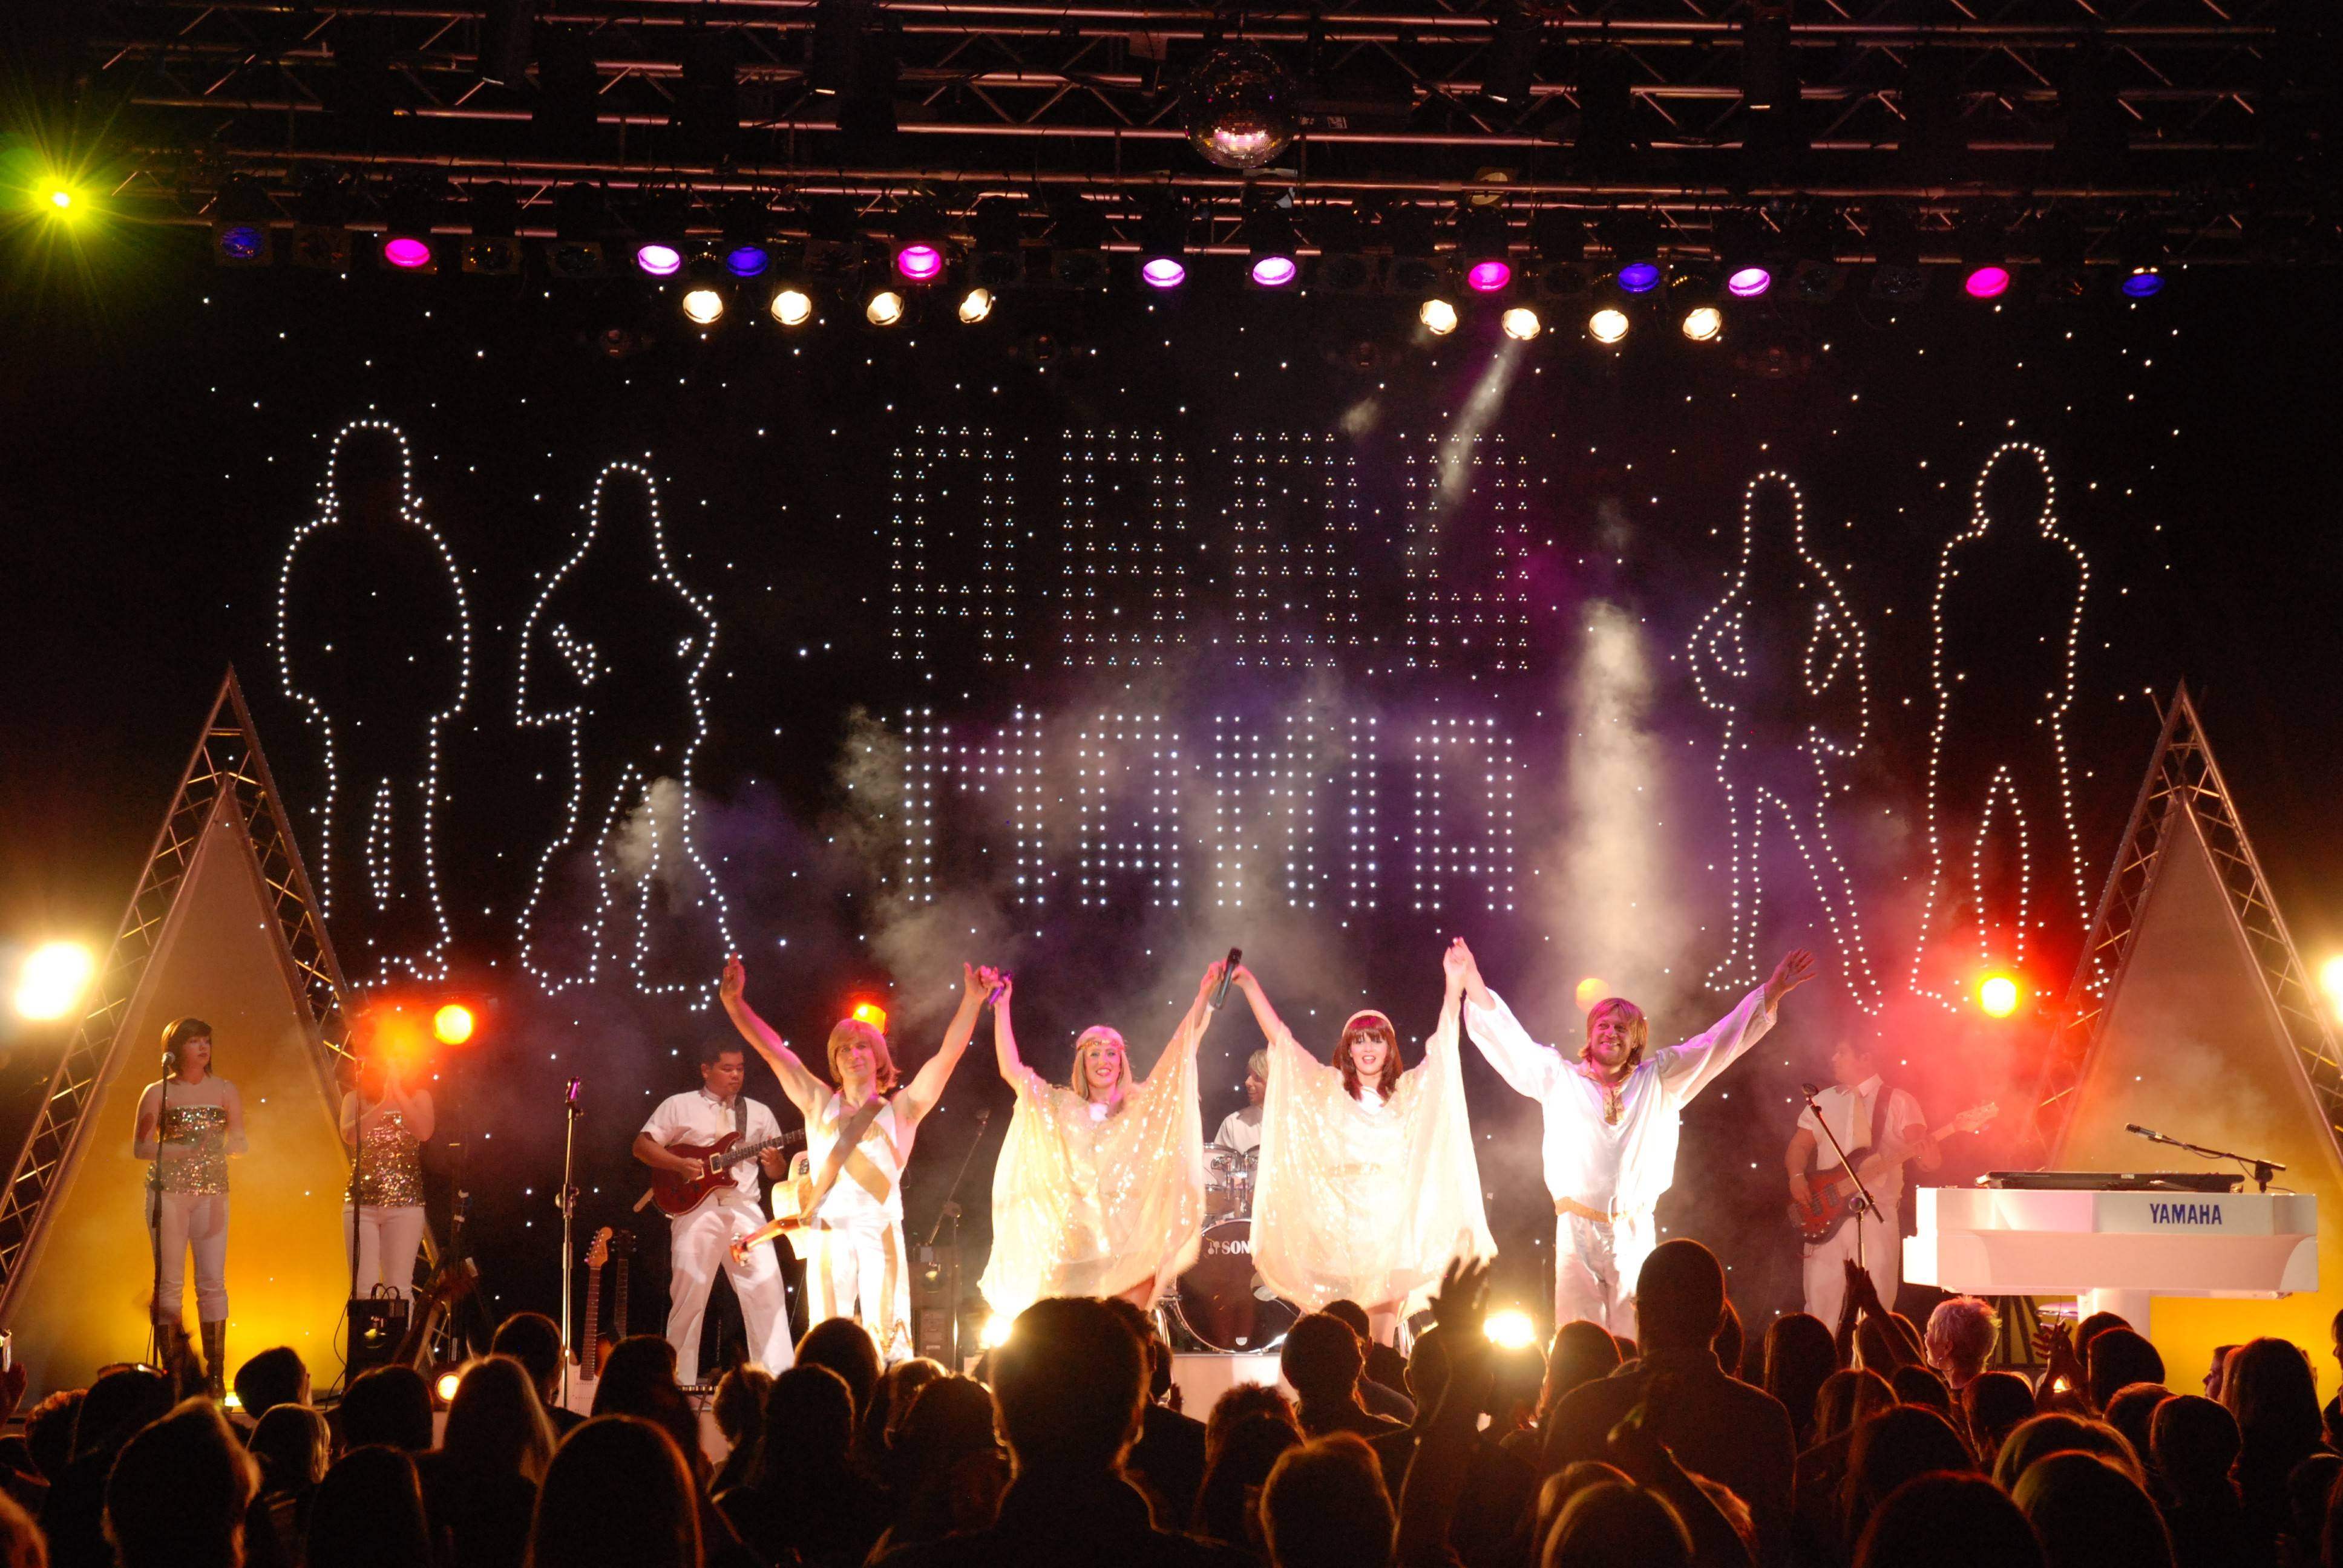 ABBA Mania presents a tribute to the legendary pop group ABBA at North Central College's Pfeiffer Hall on Friday, March 21.